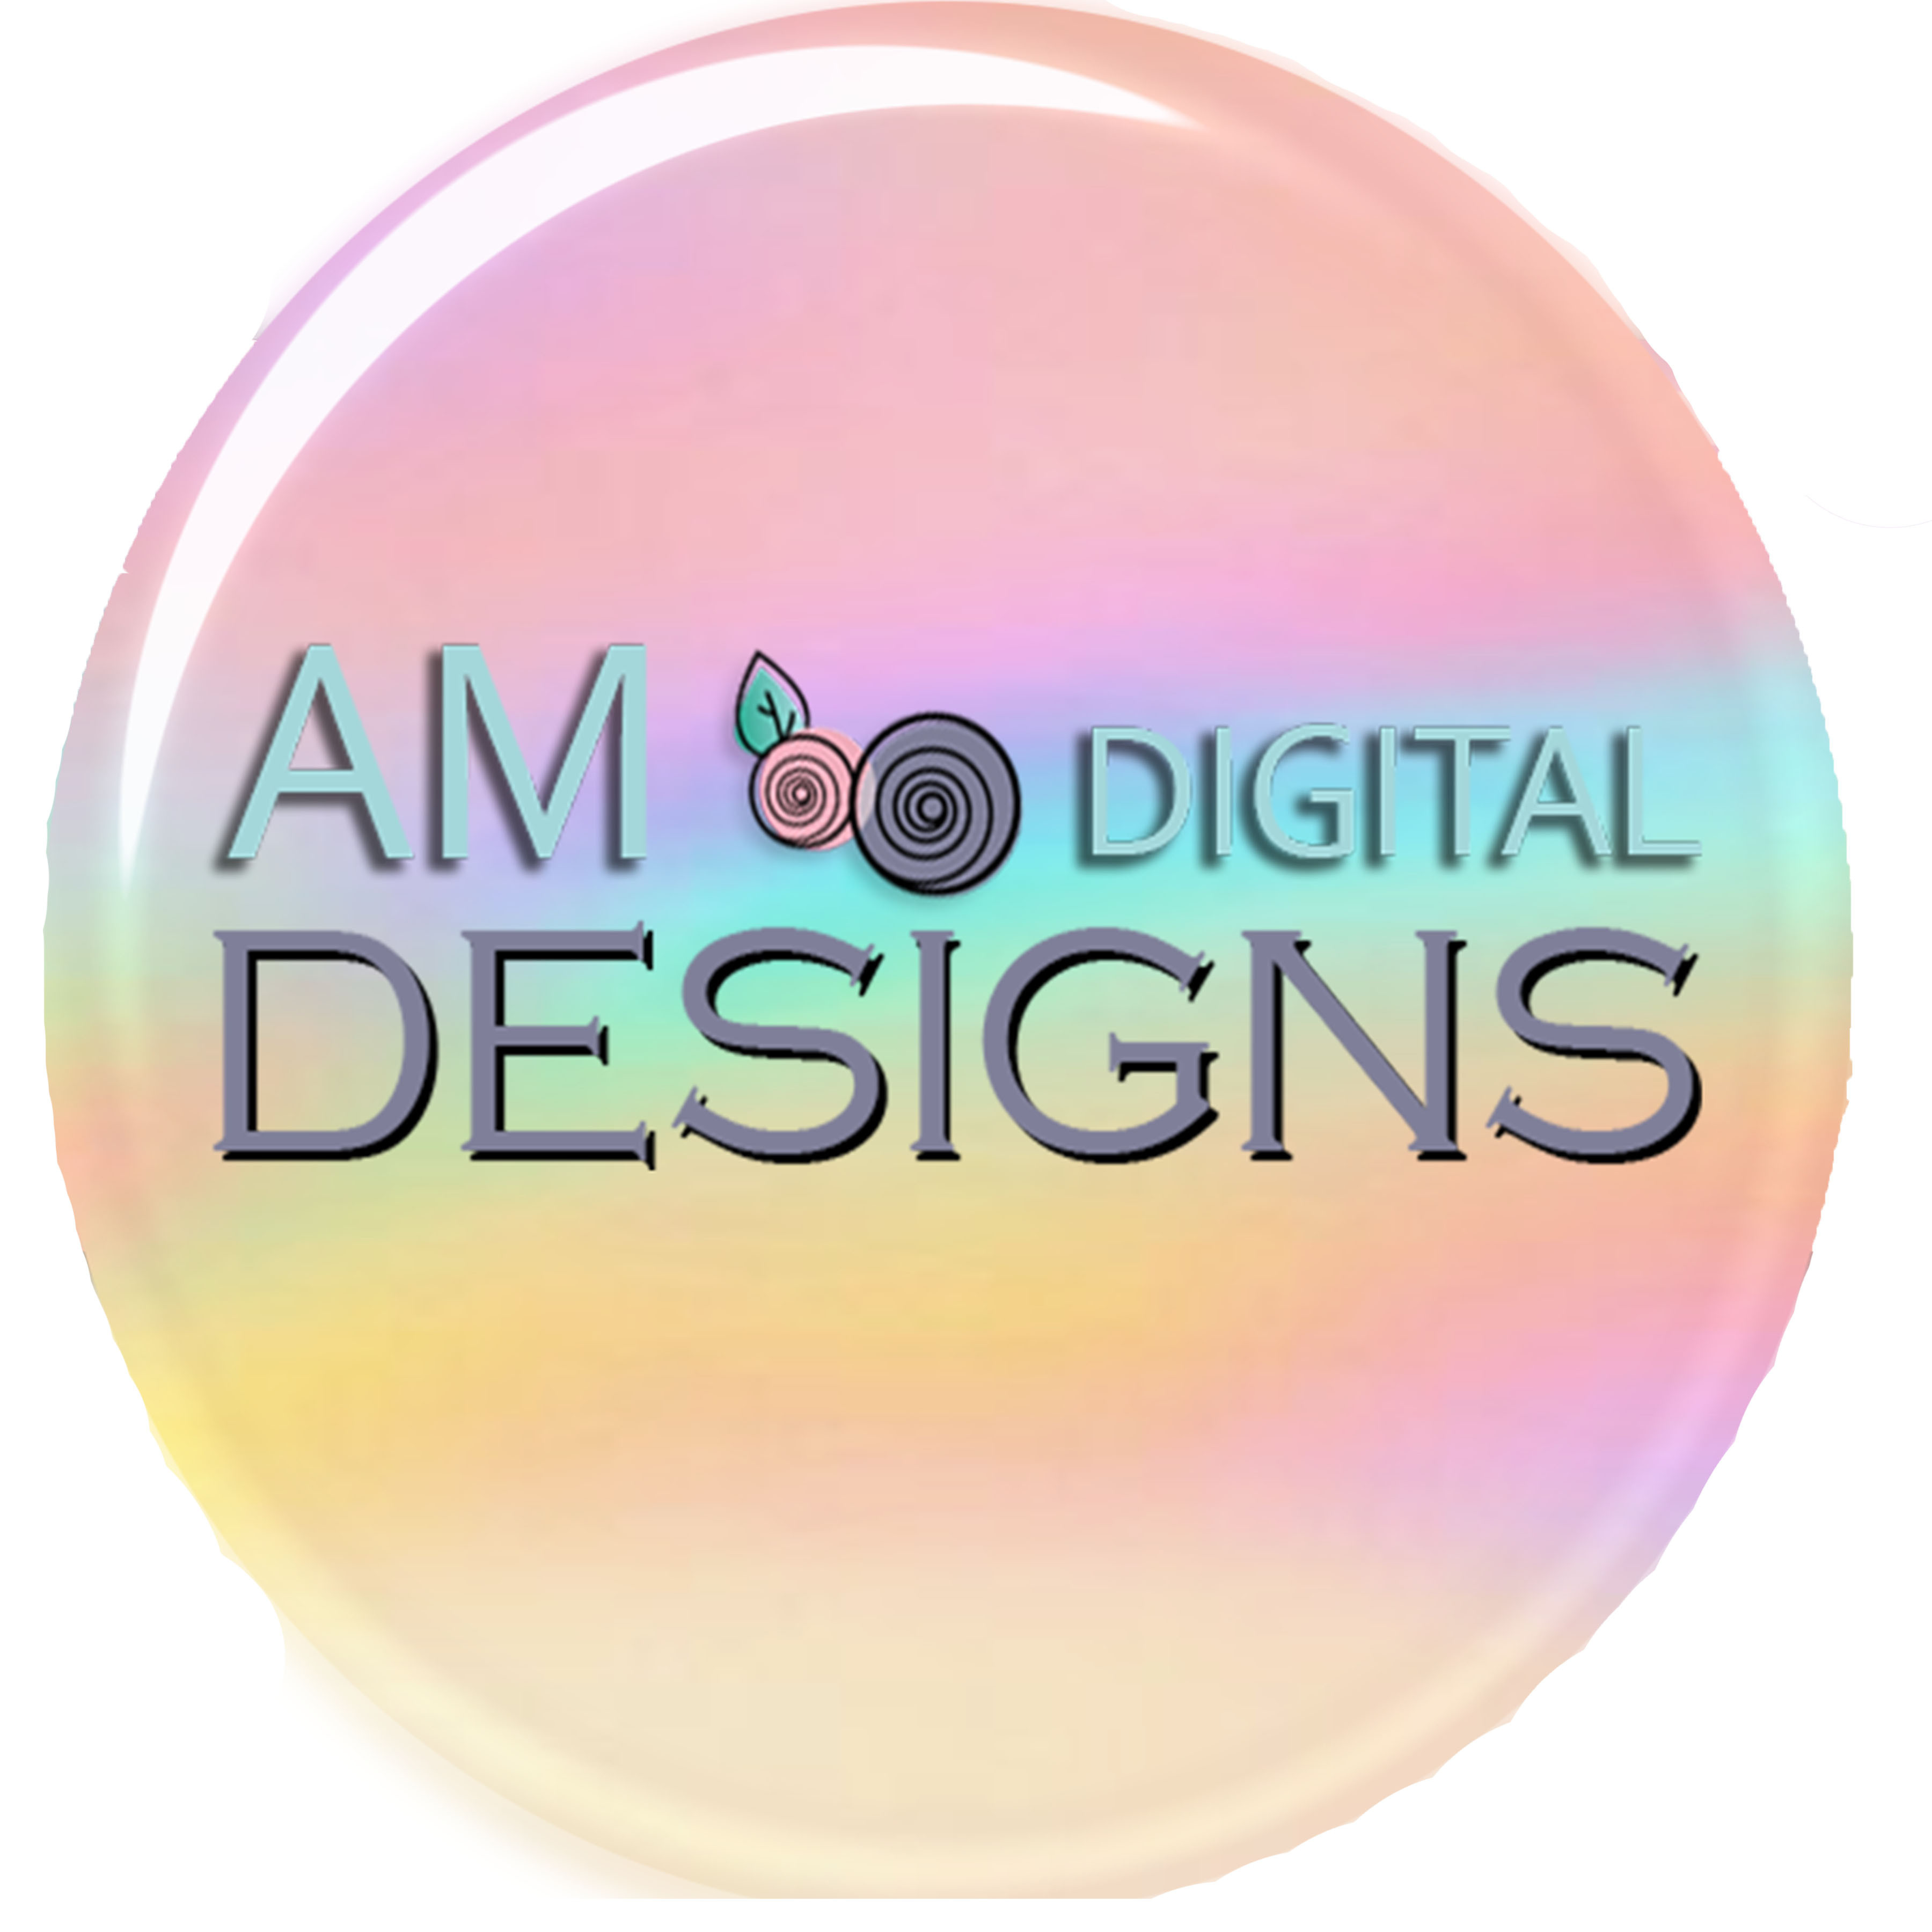 AM Digital Designs's profile picture